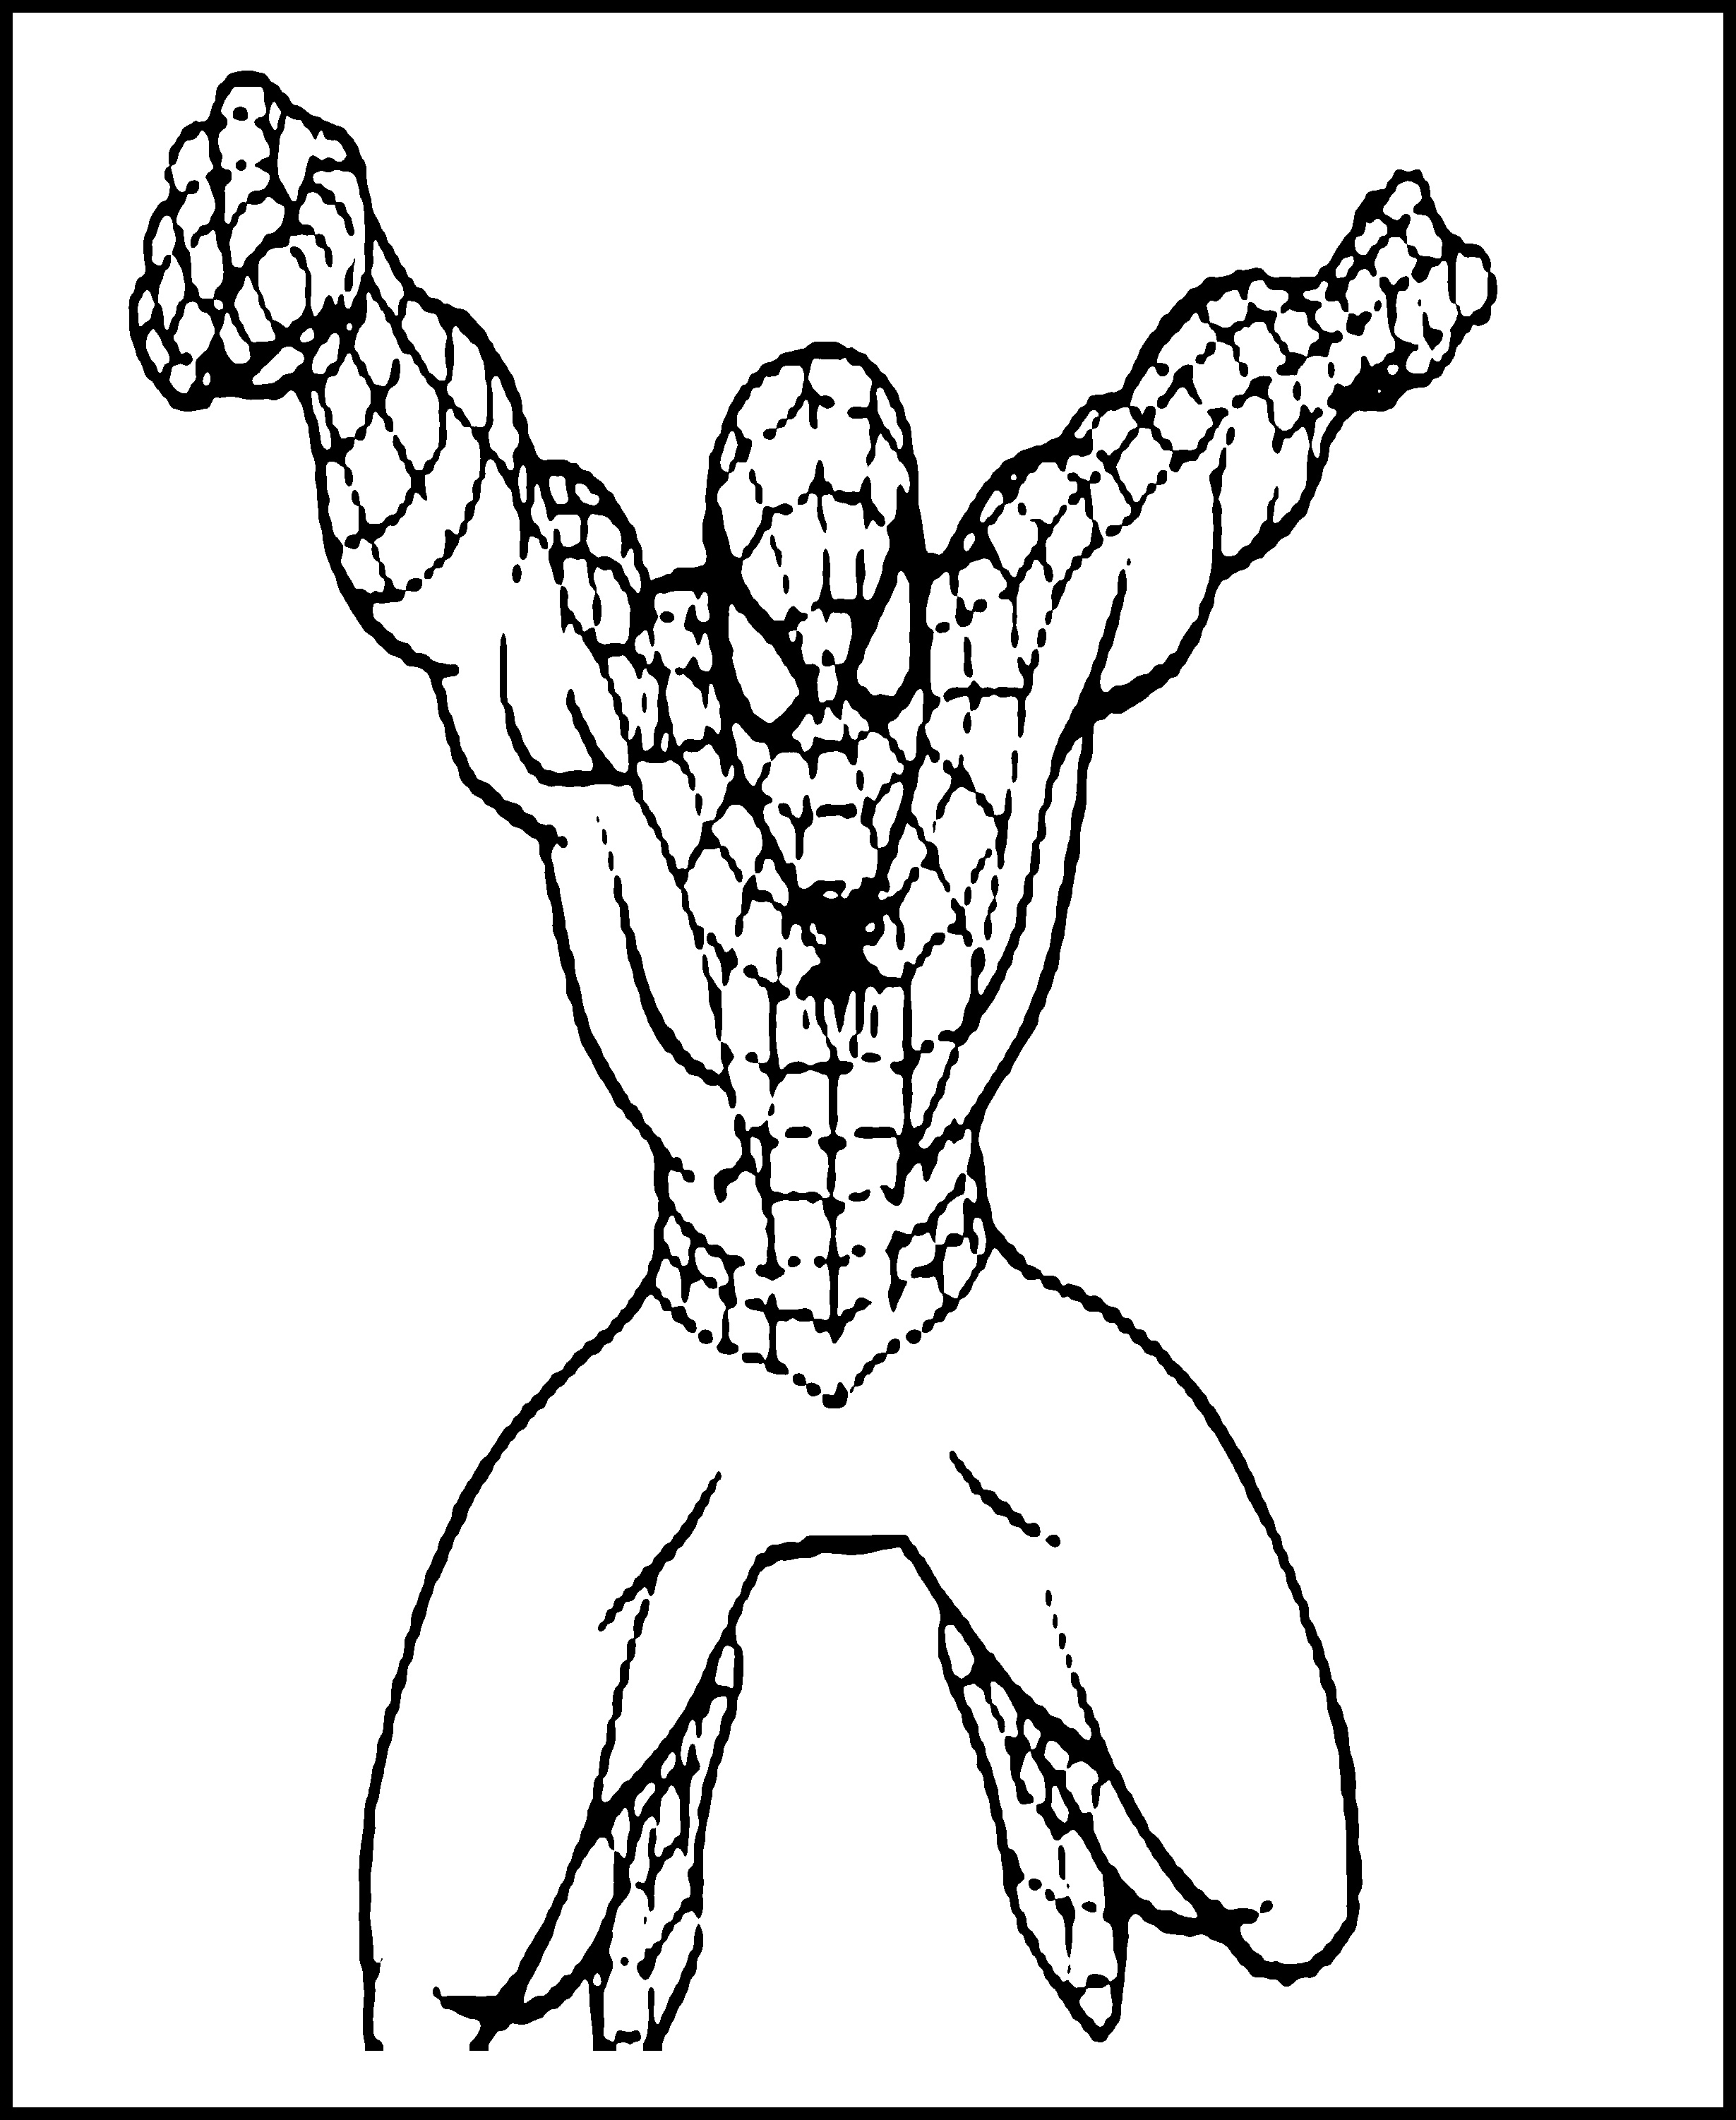 Free Printable Spiderman Coloring Pages For Kids Coloring Pages To Print Out For Free